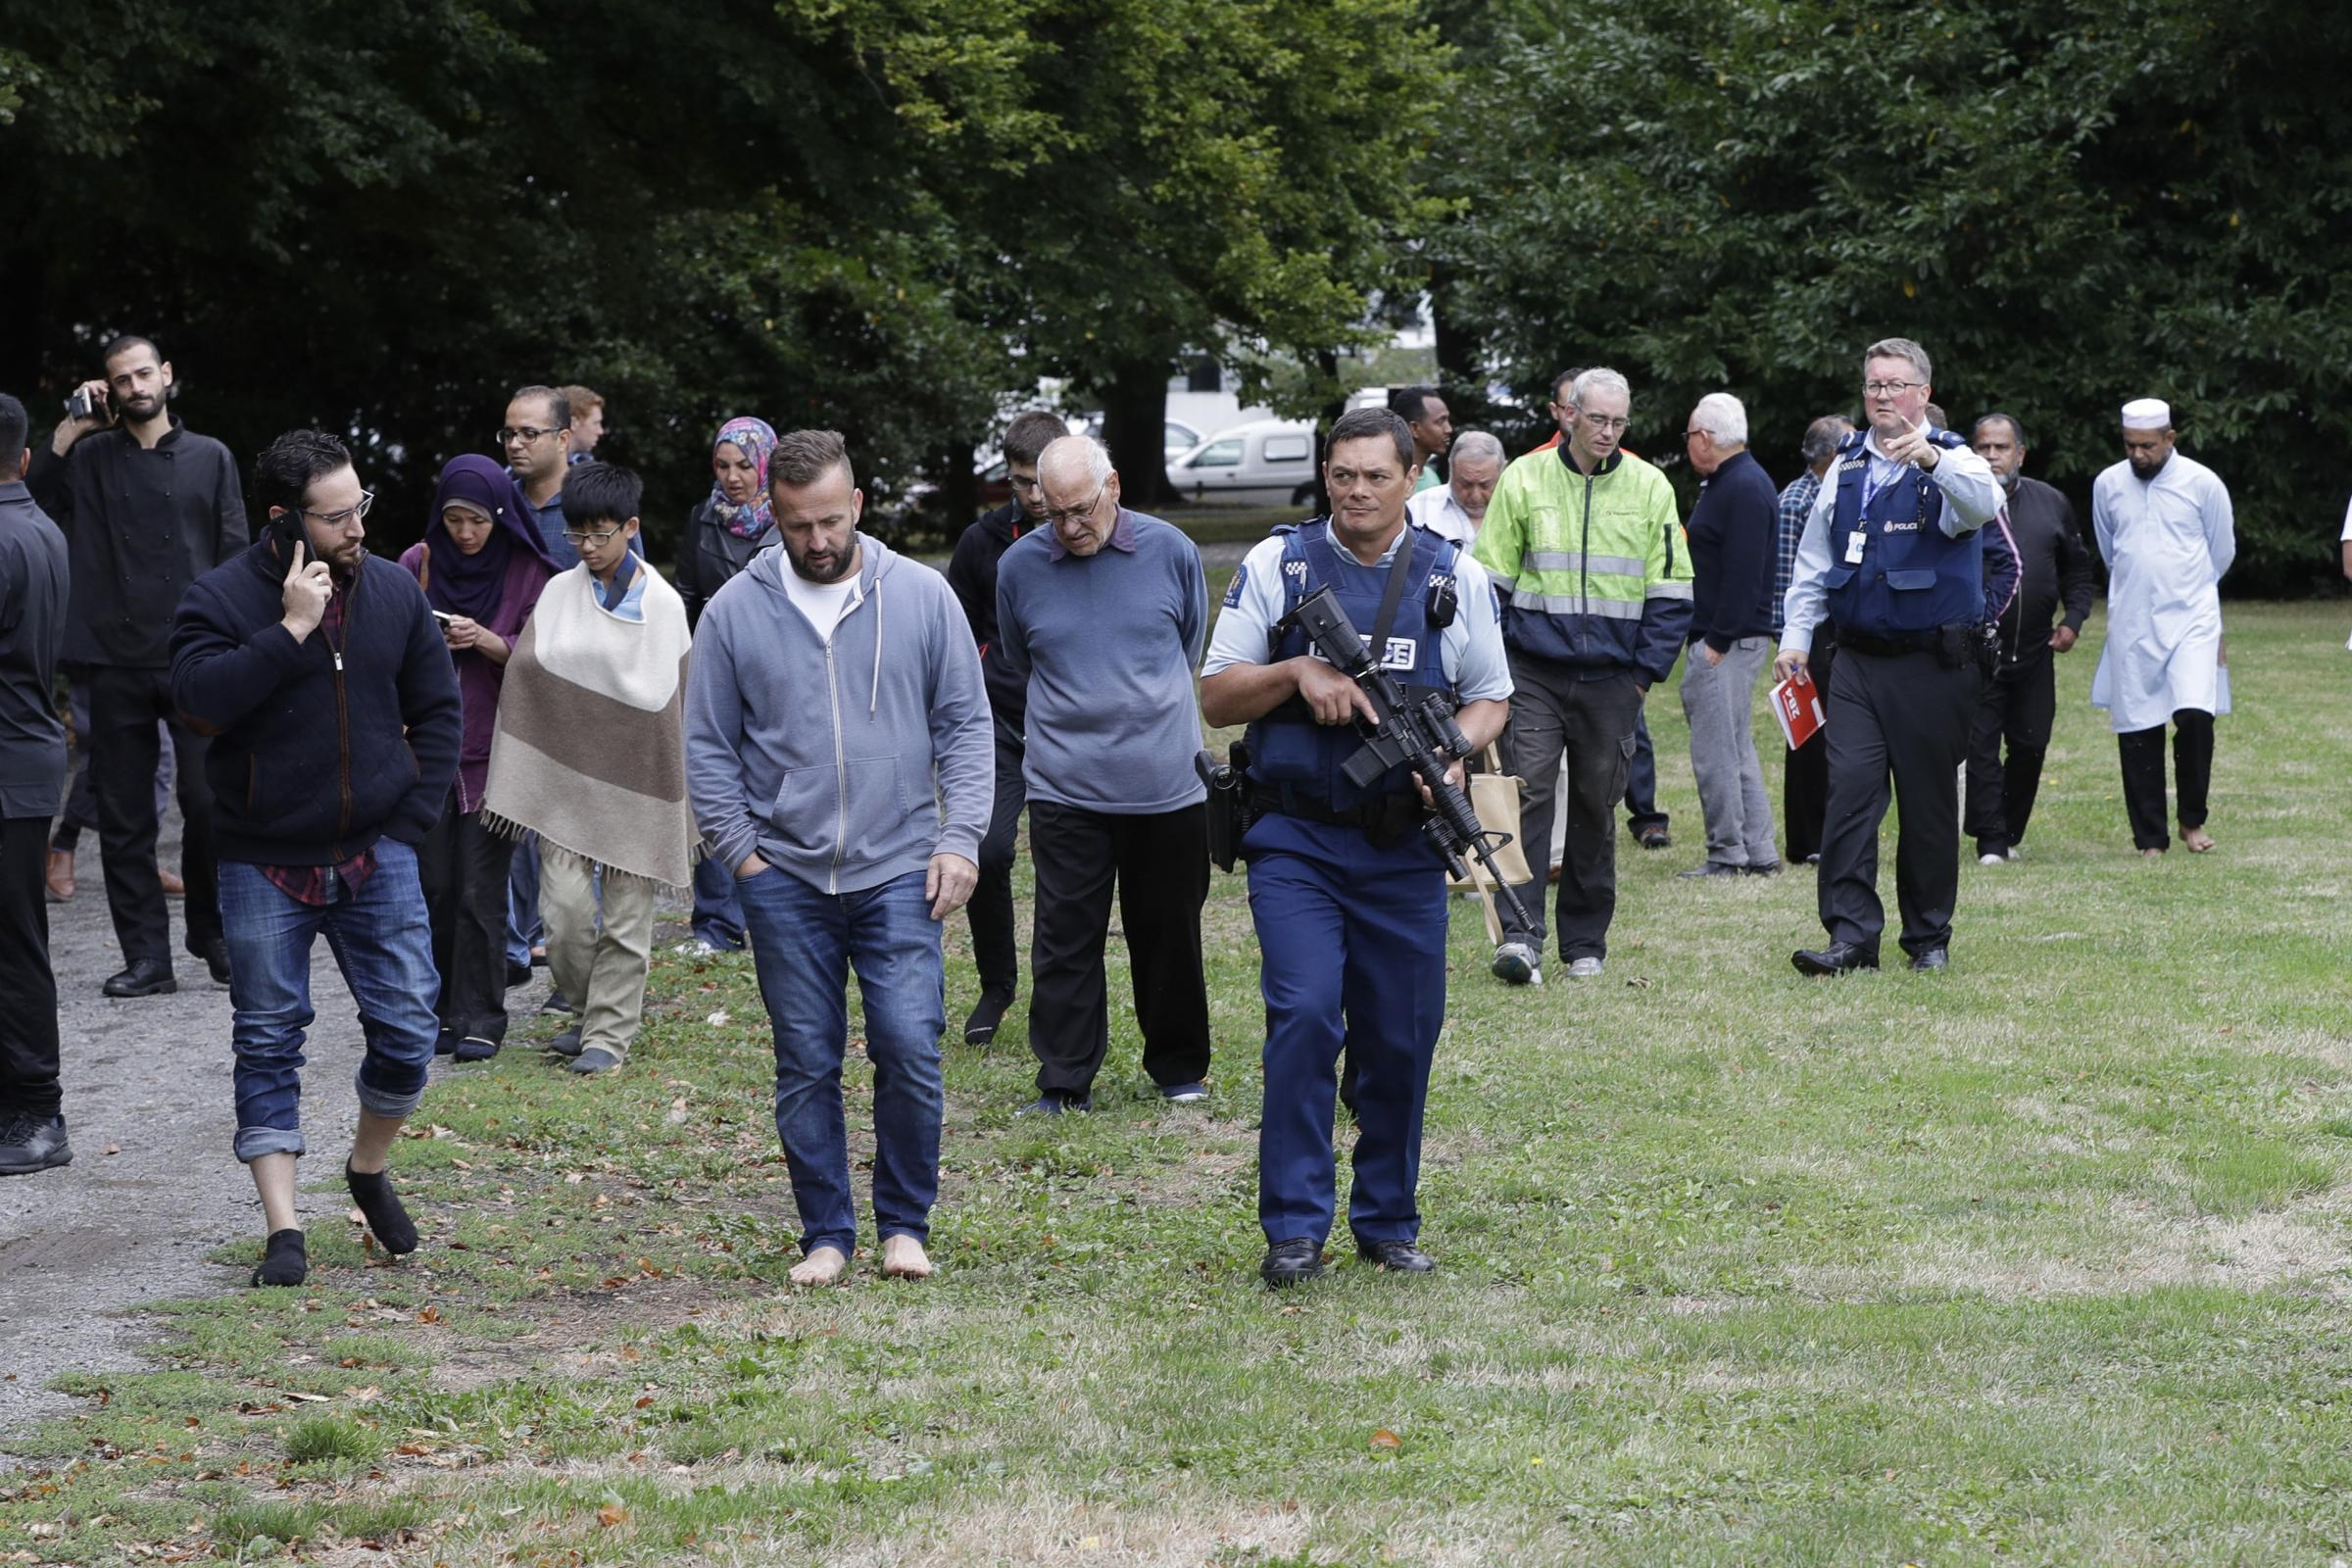 New Zealand Mosque shooting